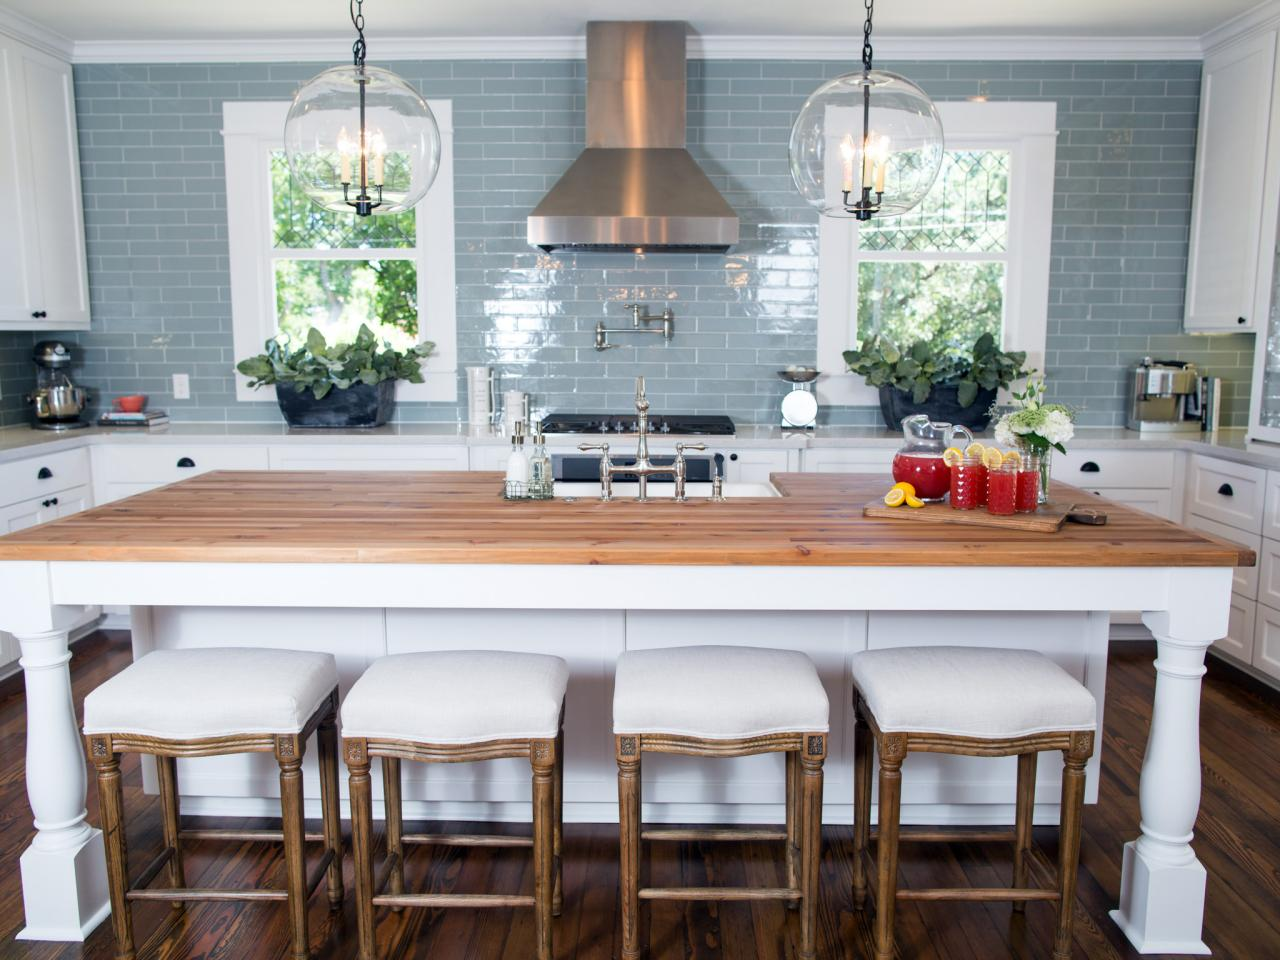 Fixer upper kitchen pendants - In The Kitchen Vintage Inspired Plumbing